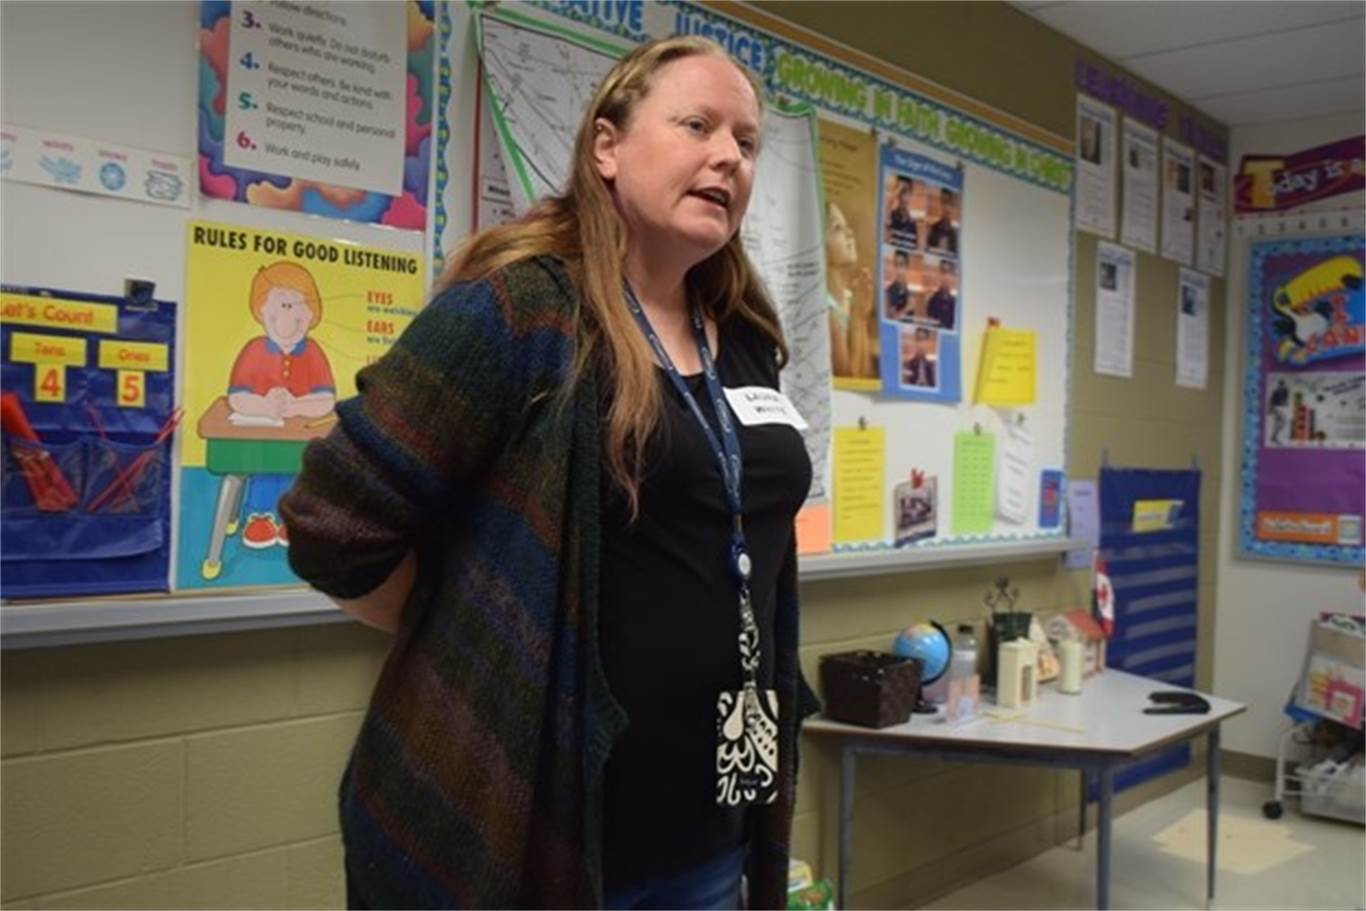 Guest speaker Laura White answers questions from students about being an air traffic controller during St. Luke Catholic Elementary School's fourth career day on May 3. Photo by Laura Lennie, Stoney Creek News.